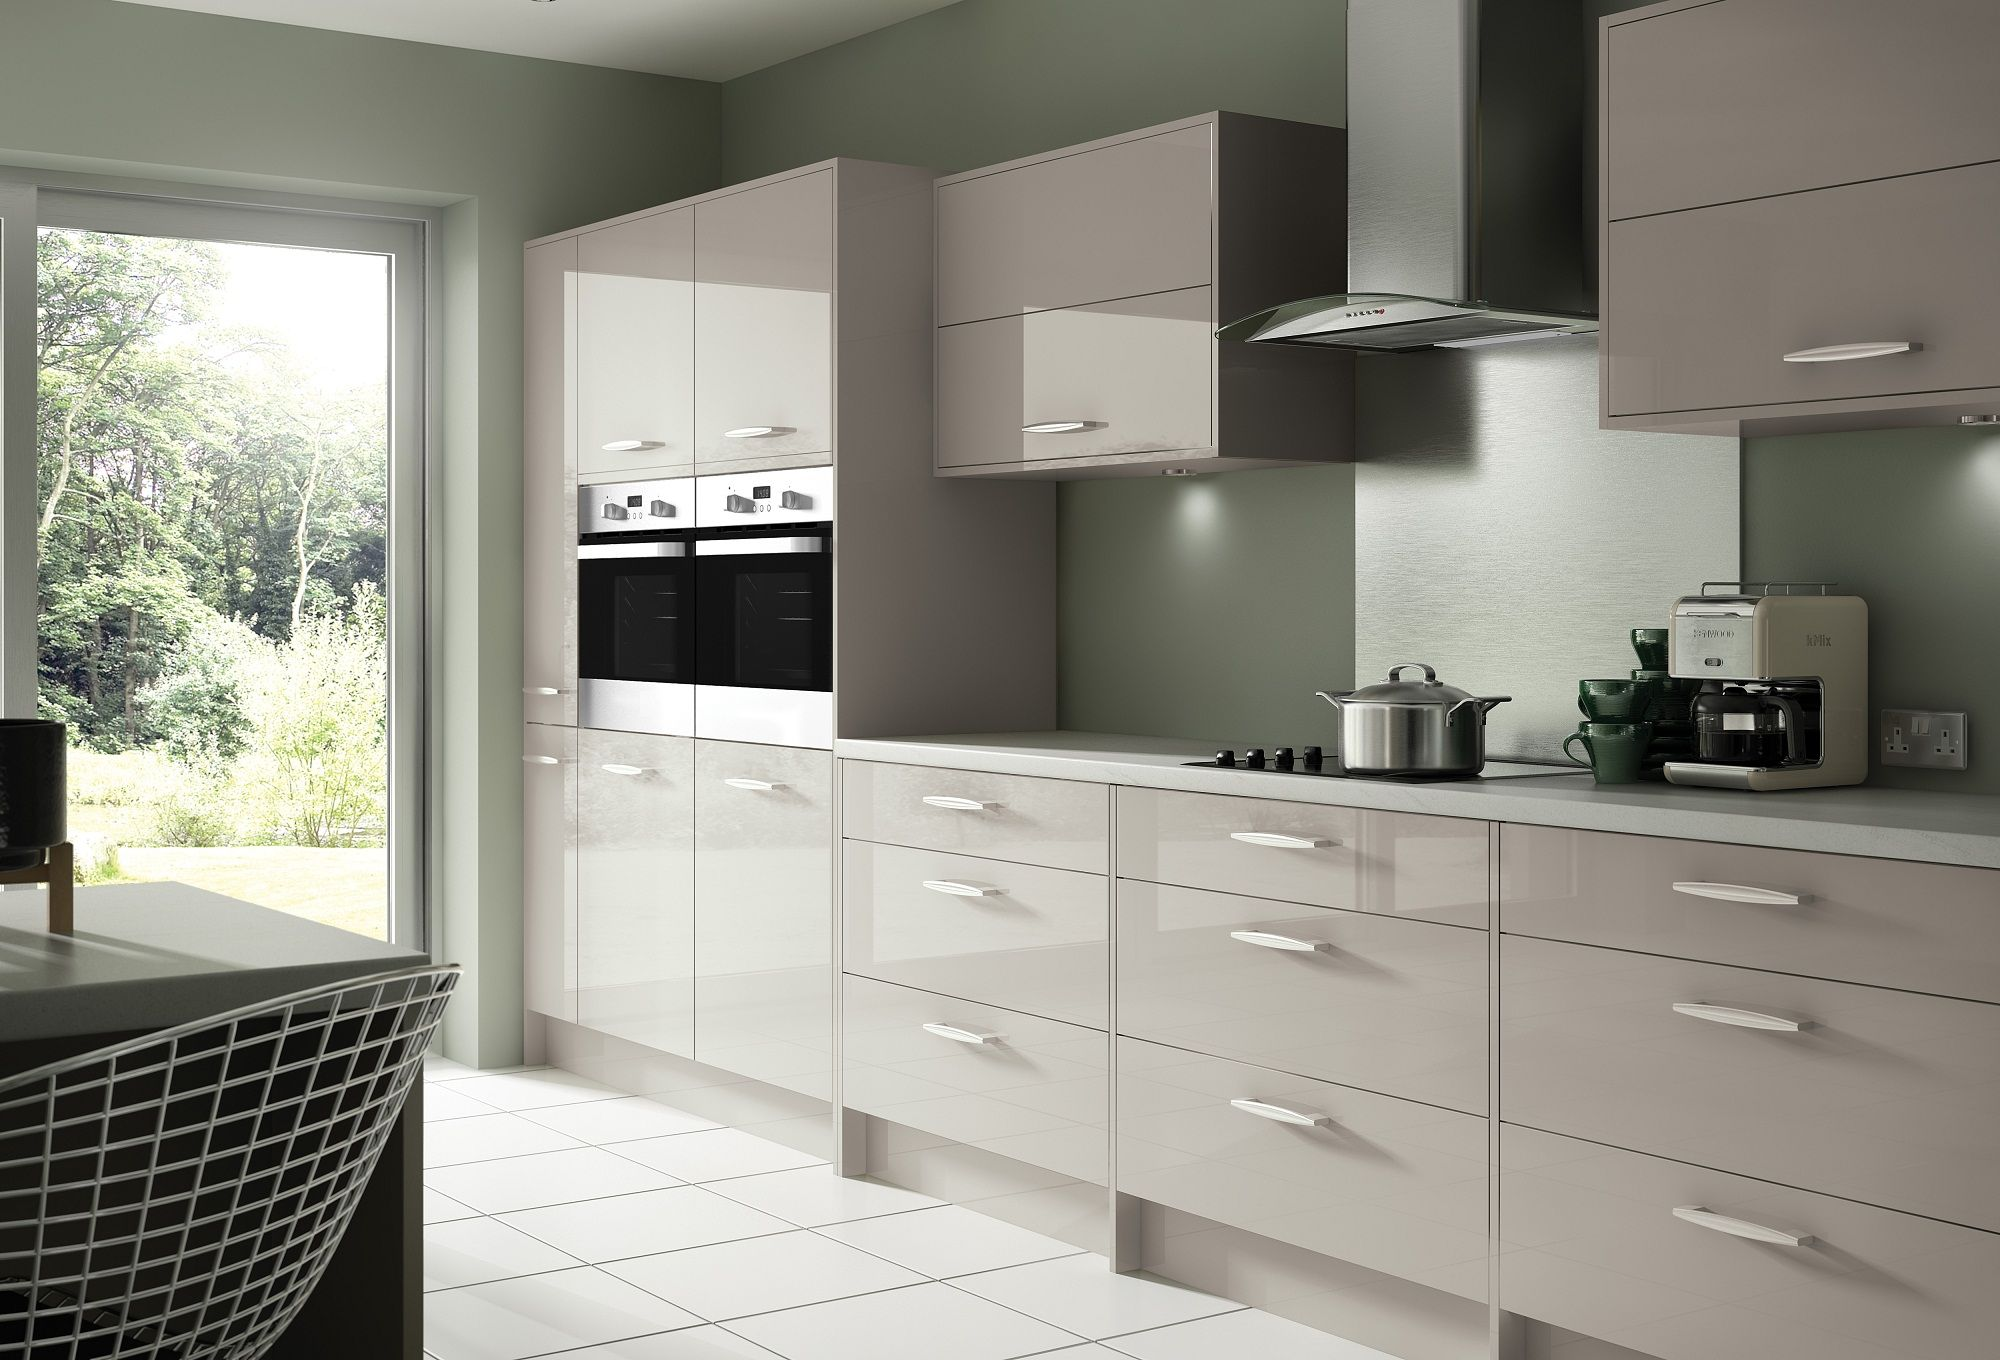 Pin by Aleisha A on scullery n laundry Kitchen, Warm